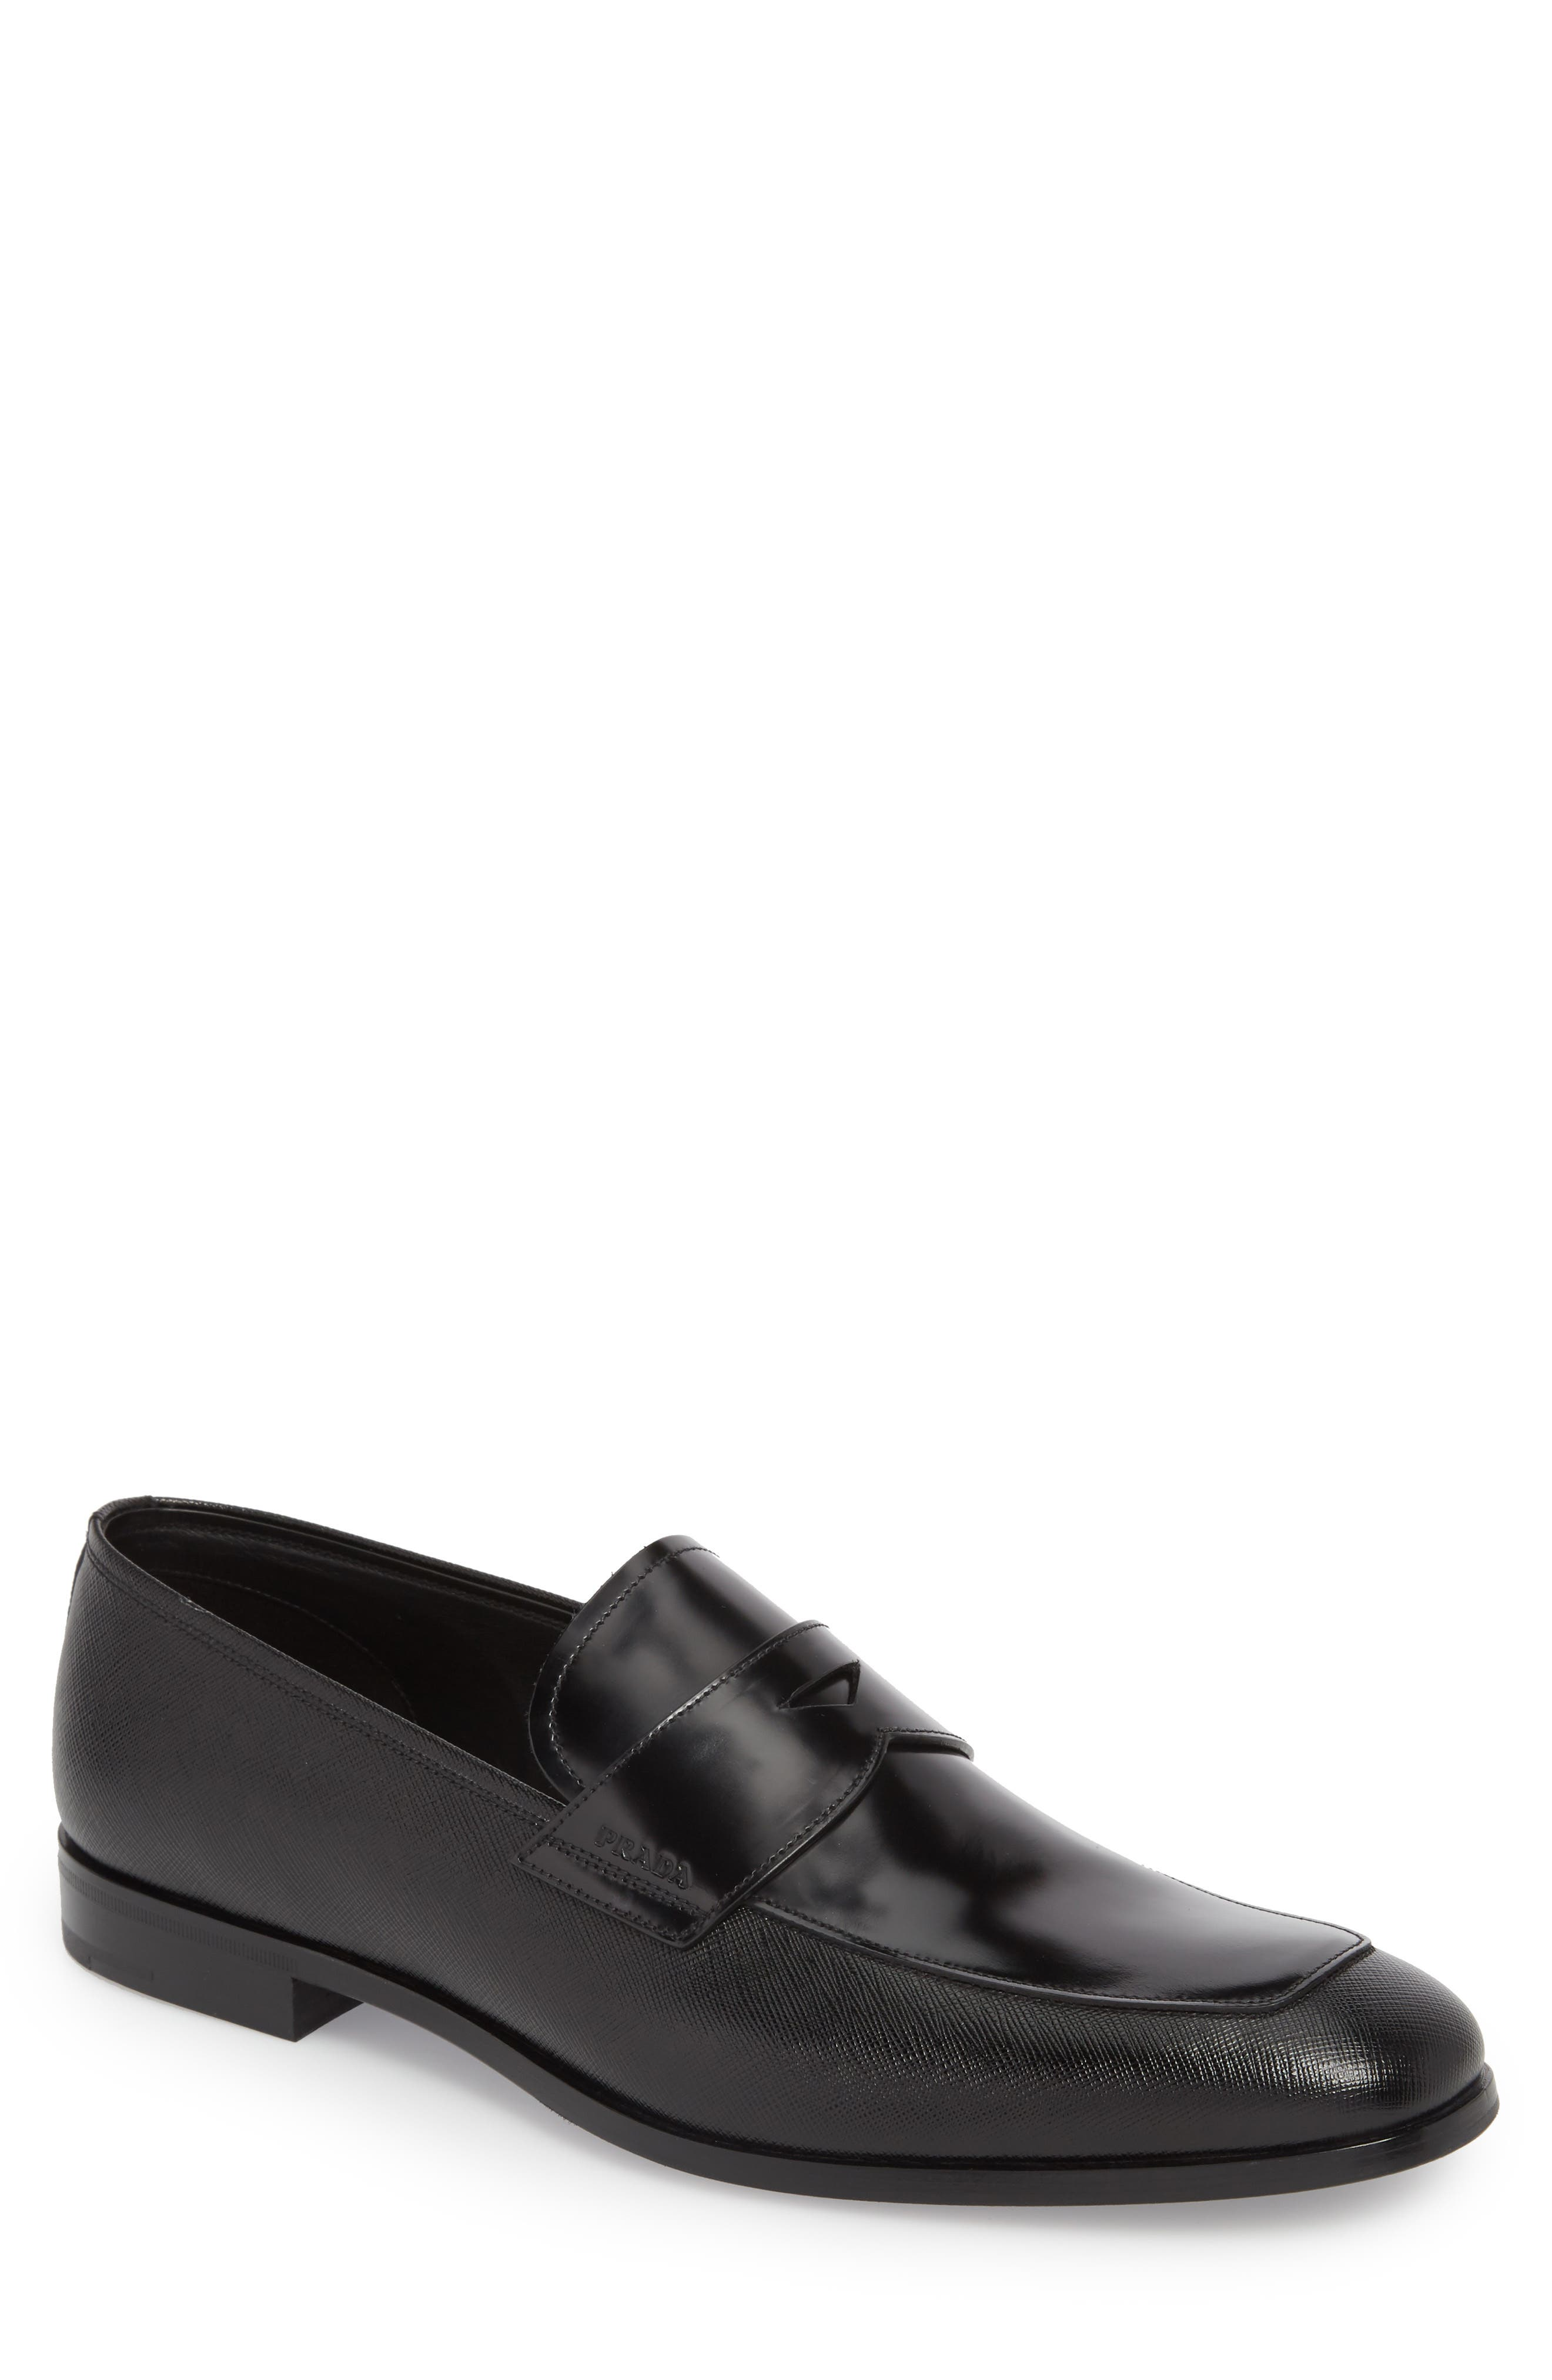 Saffiano Leather Penny Loafer,                             Main thumbnail 1, color,                             NERO